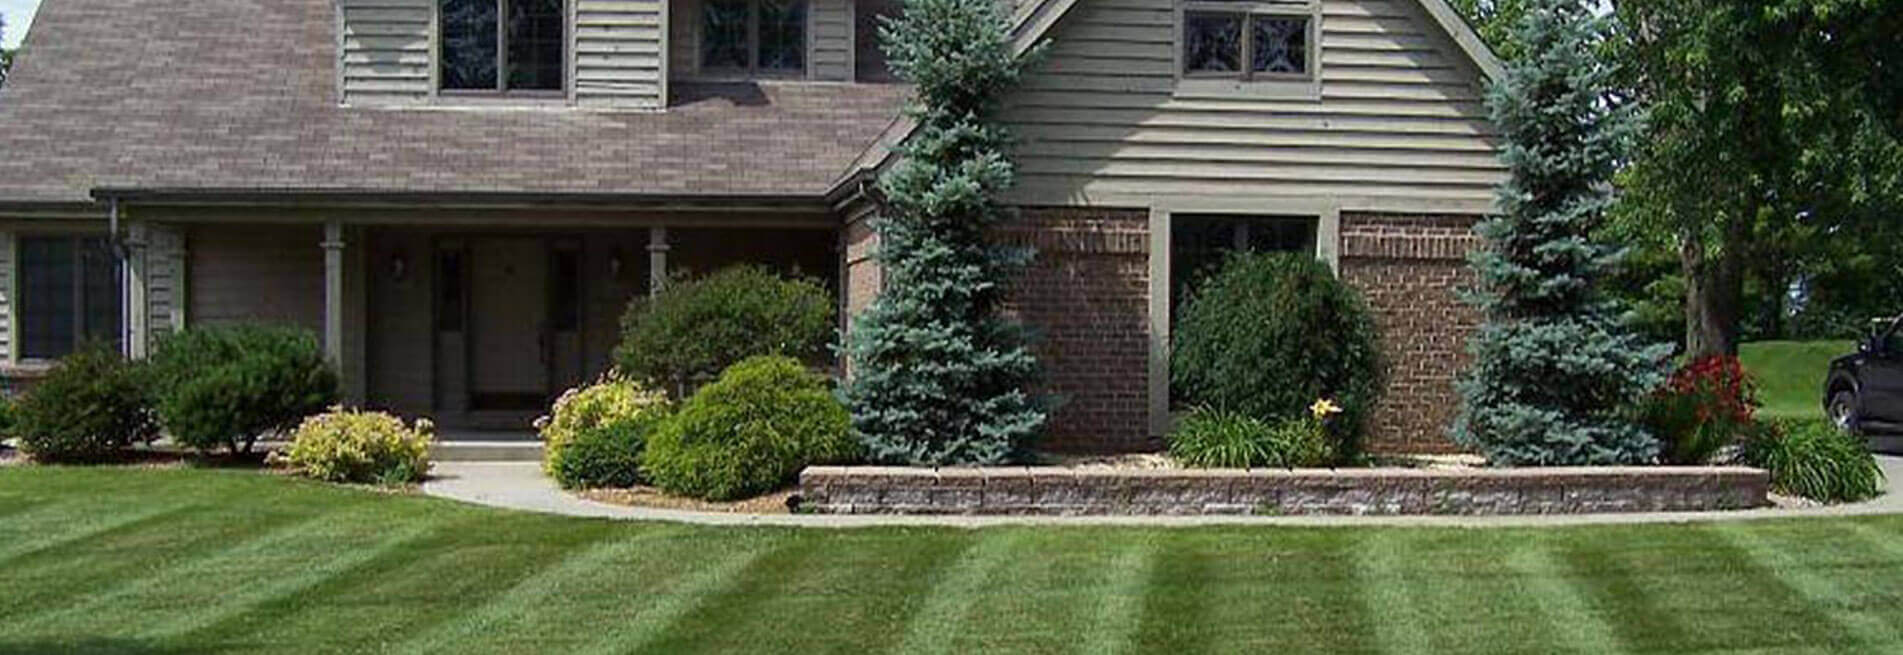 Spokane Valley Landscaping Company, Lawn Care Services and Lawn Mowing Service